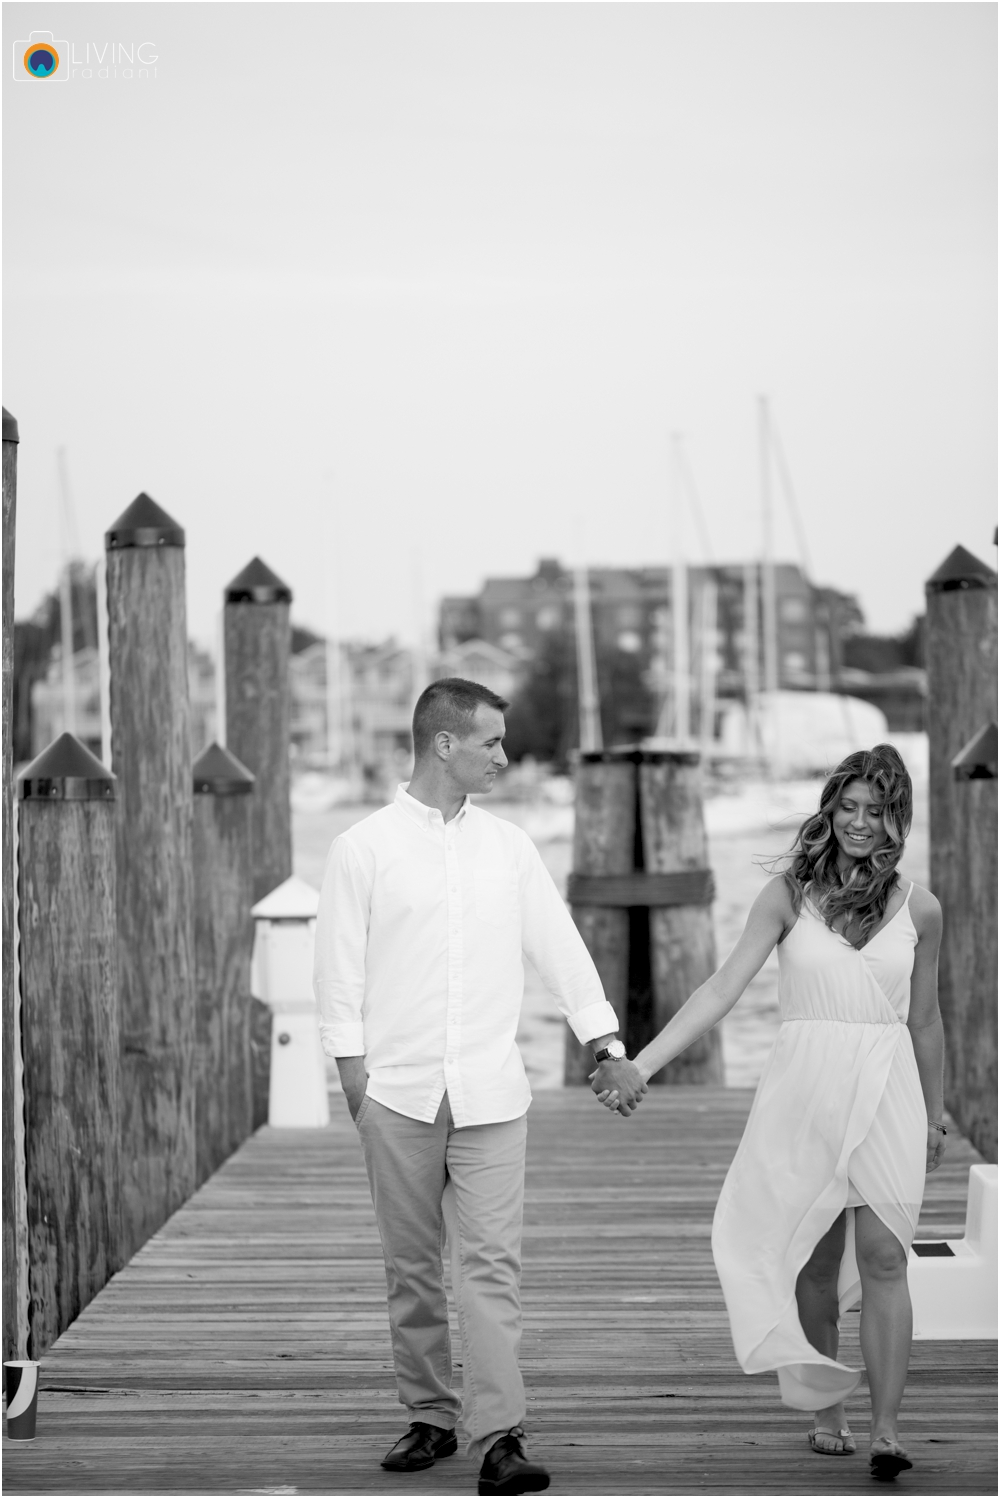 Annapolis-Naval-Academy-Engagement-Wedding-Pictures-Living-Radiant-Photography-Outdoor-Waterfront-Lauren-James_0046.jpg